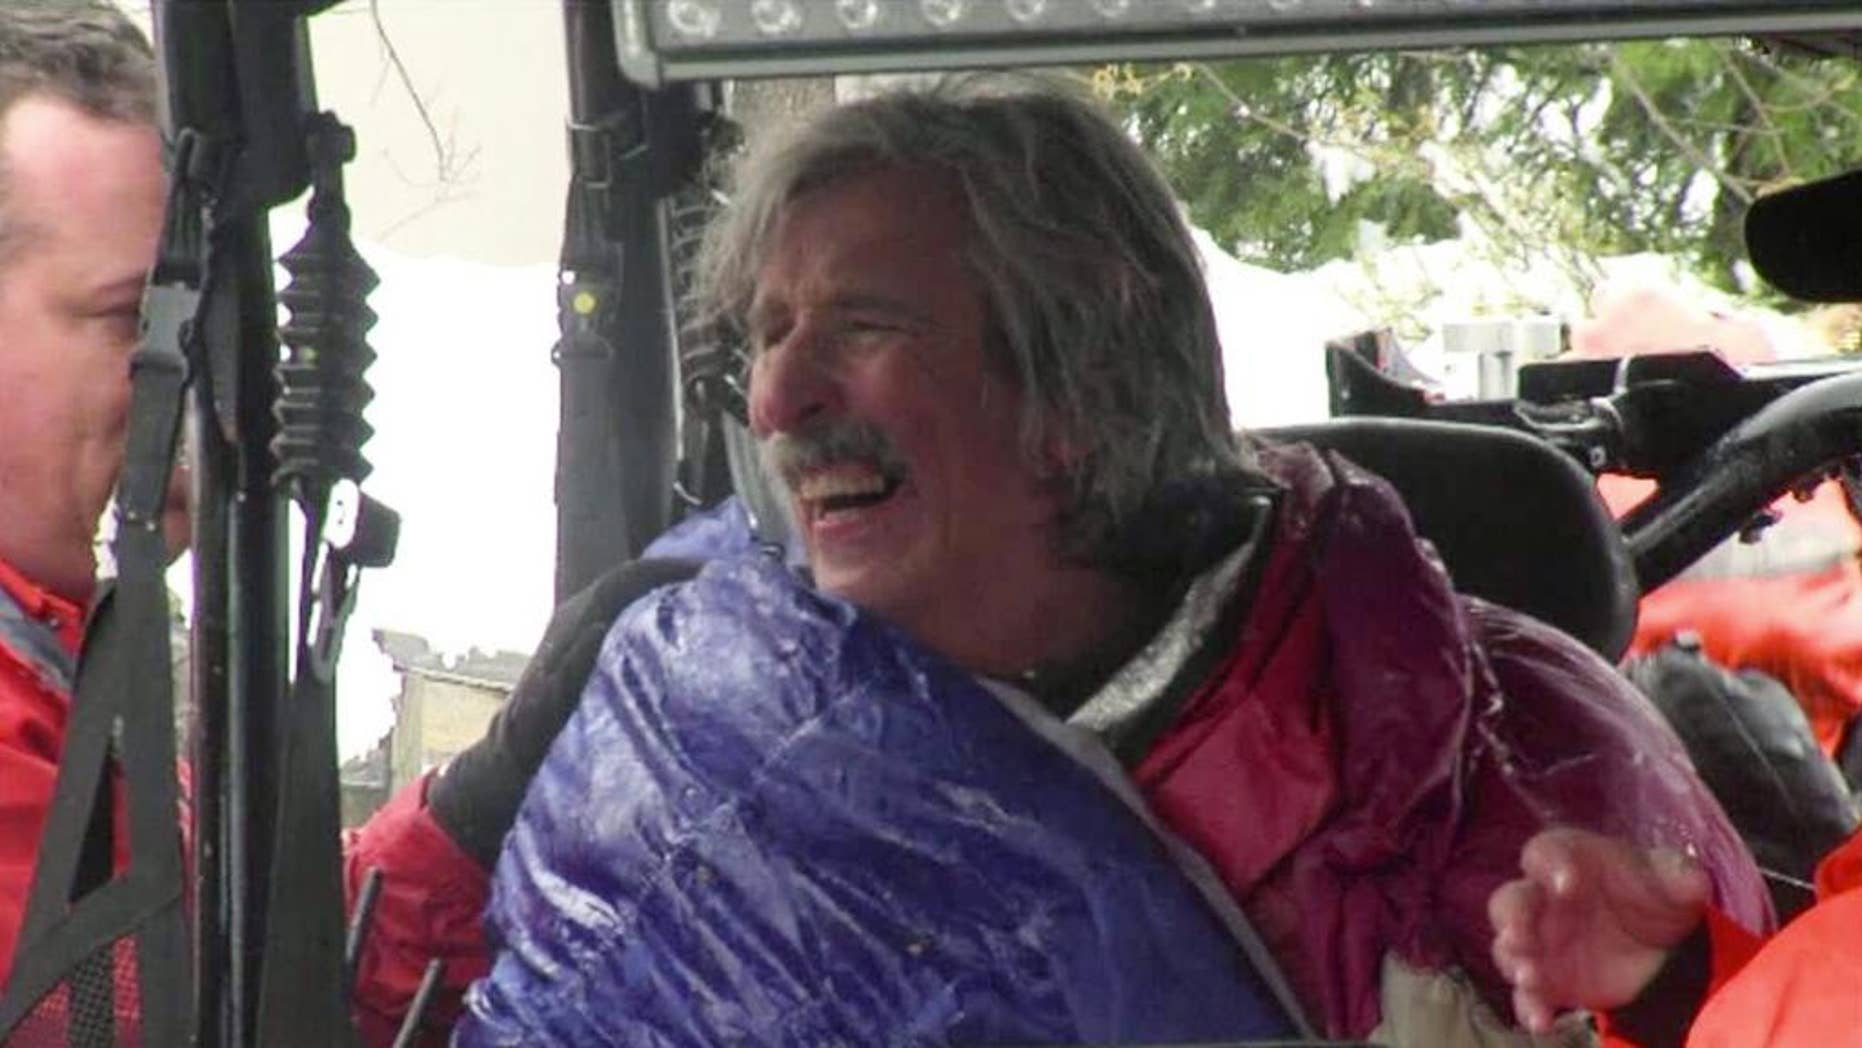 This image from video provided by KTXL Fox 40 Sacramento, shows trail runner Robert Root after being rescued Tuesday, April 1, 2014, near Foresthill, Calif., in Placer County. Root was found alive in snowy conditions, two days after he went missing near a trail in a mountainous region of Northern California, authorities said. Root, 55, of Modesto, Calif., was wearing only a light running shirt, shorts and running shoes when he was discovered by rescuers on the Western States trail. (AP Photo/KTXL Fox 40 Sacramento)